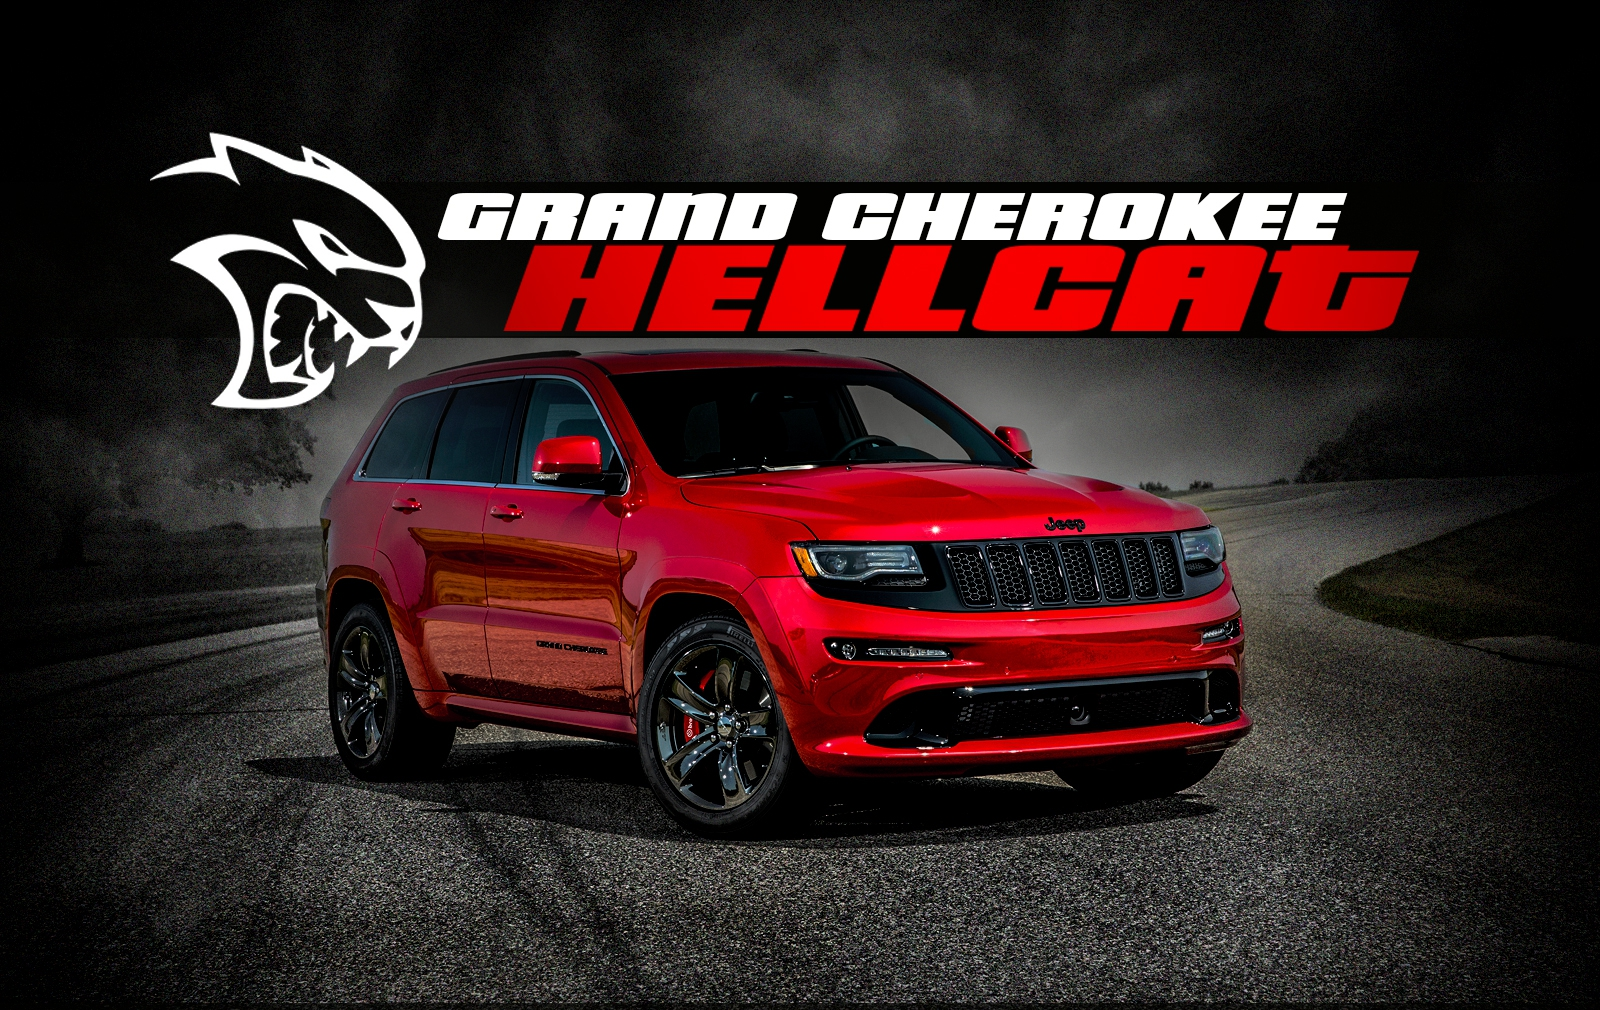 Keep CEO Confirms Grand Cherokee Hellcat available before the end of 2017.